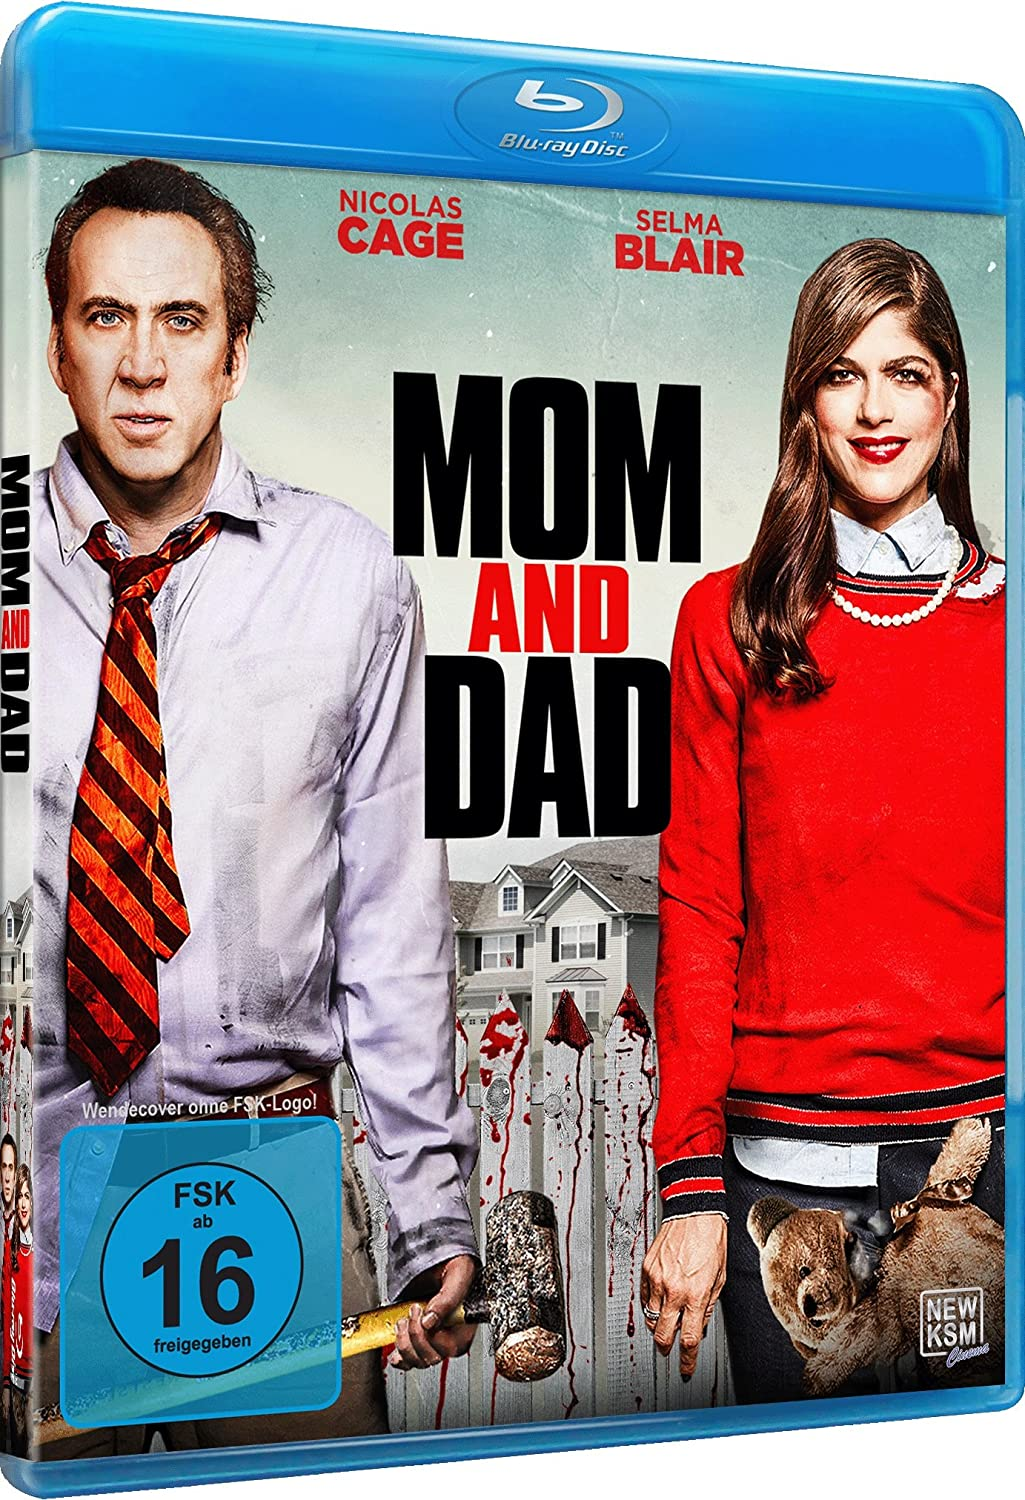 Mom And Dad Blu Ray Amazon De Nicolas Cage Selma Blair Anne Winters Arthur Zackary Lance Henriksen Brian Taylor Dvd Blu Ray